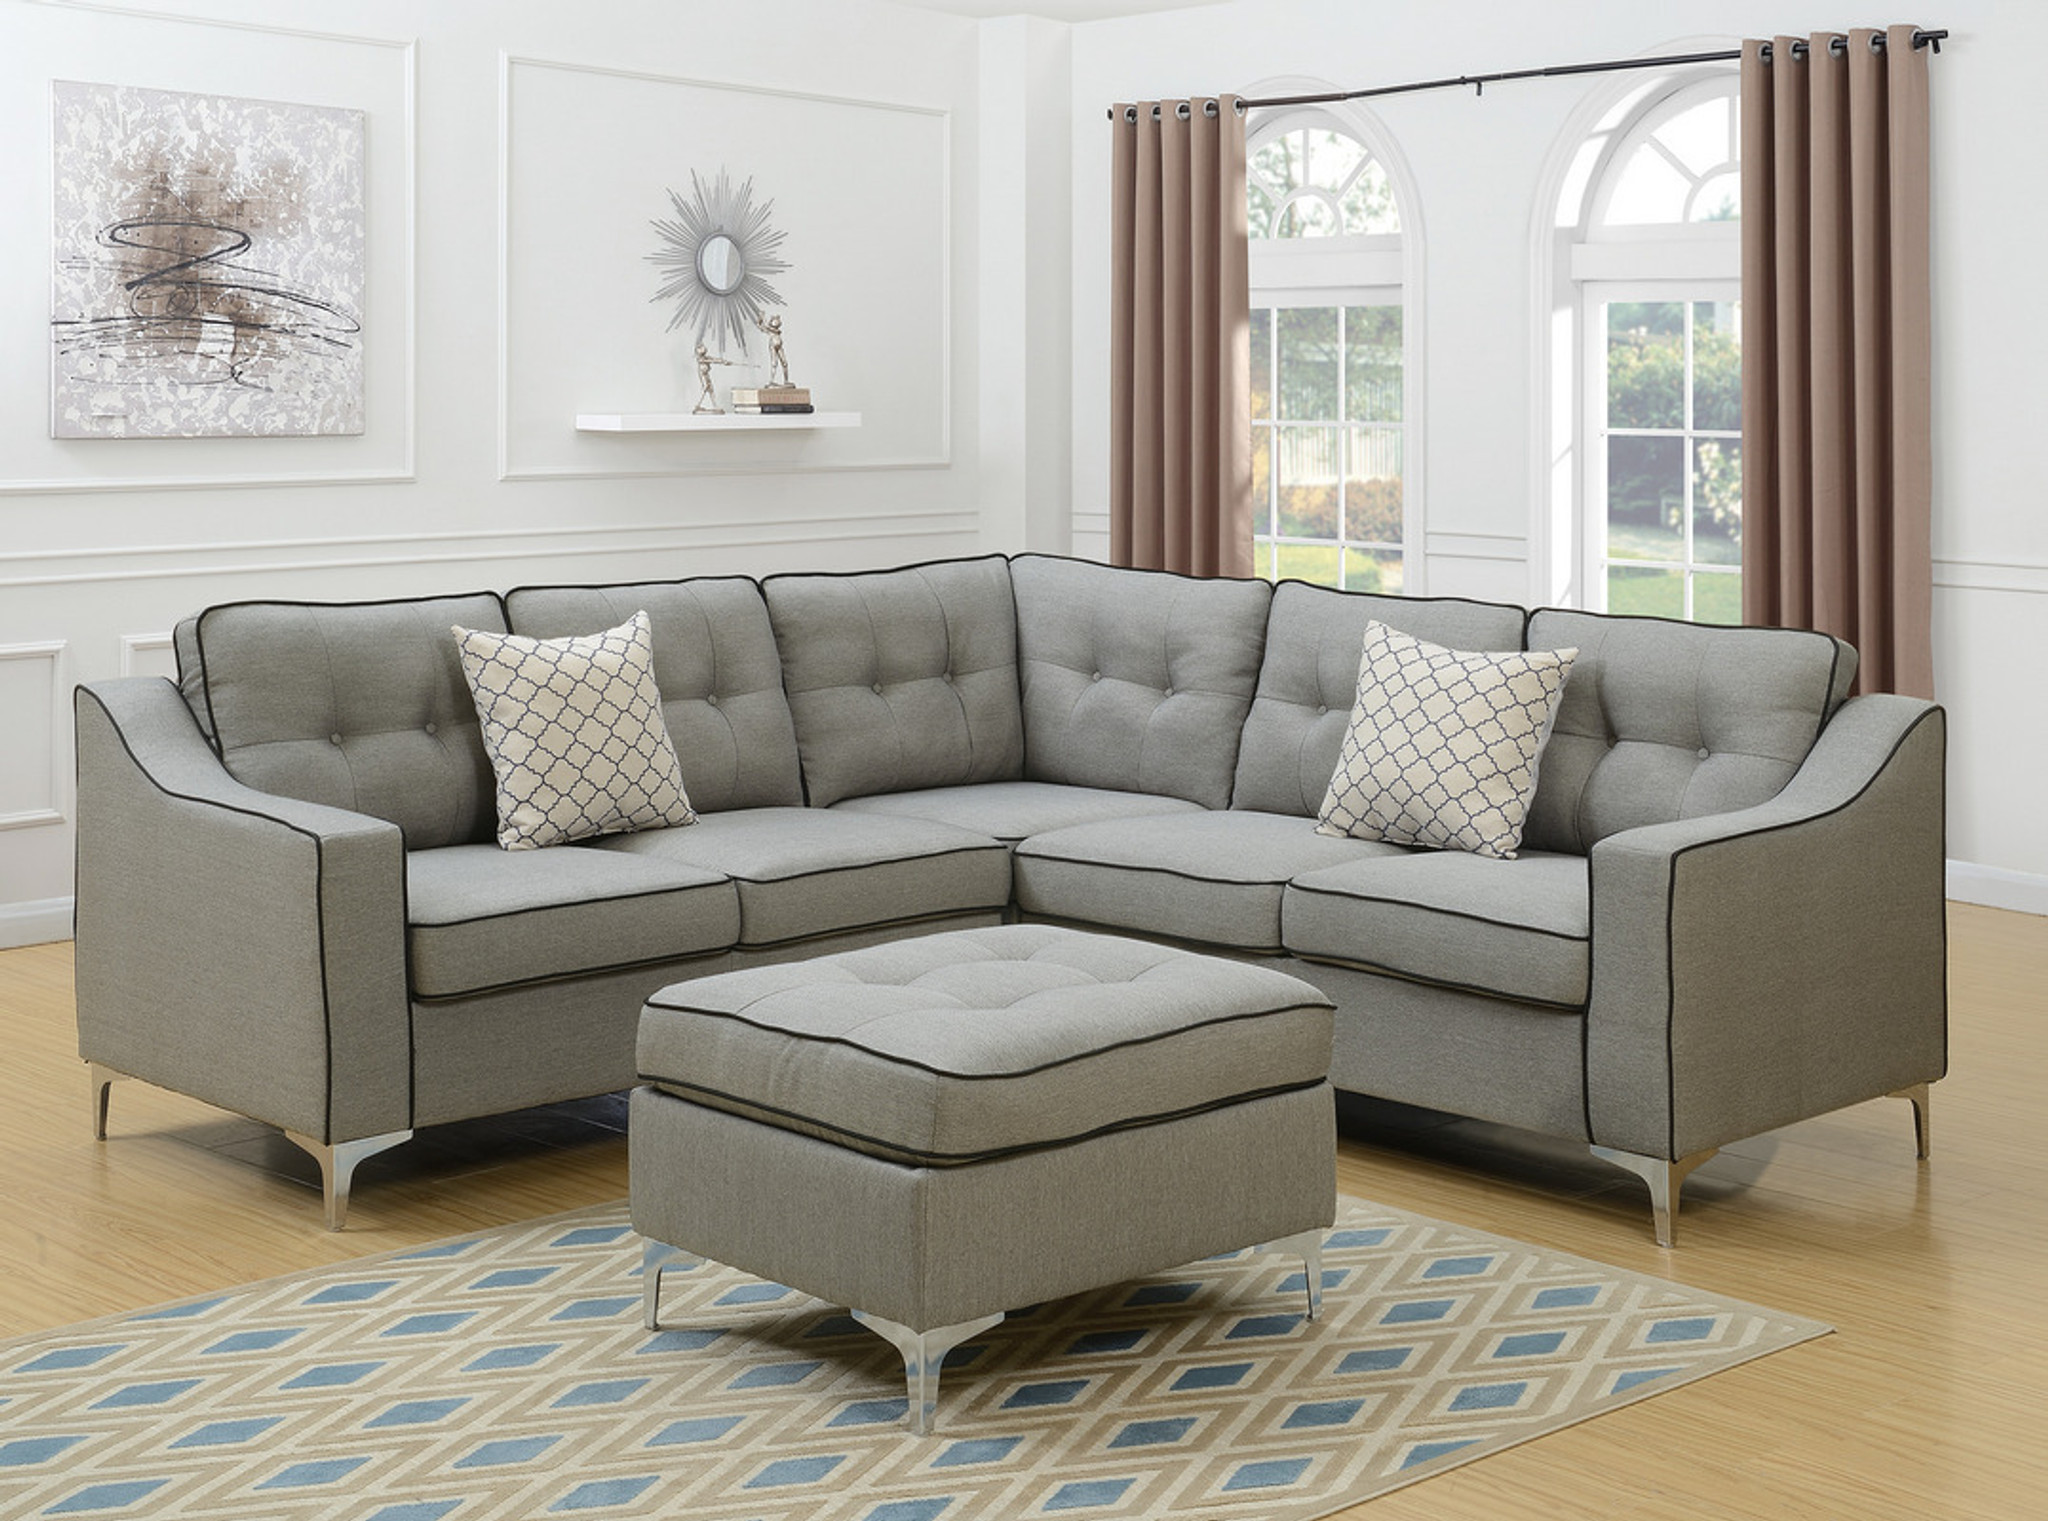 Enjoyable 4Pc Ralph Sectional Set With Ottoman In Light Gray Uwap Interior Chair Design Uwaporg